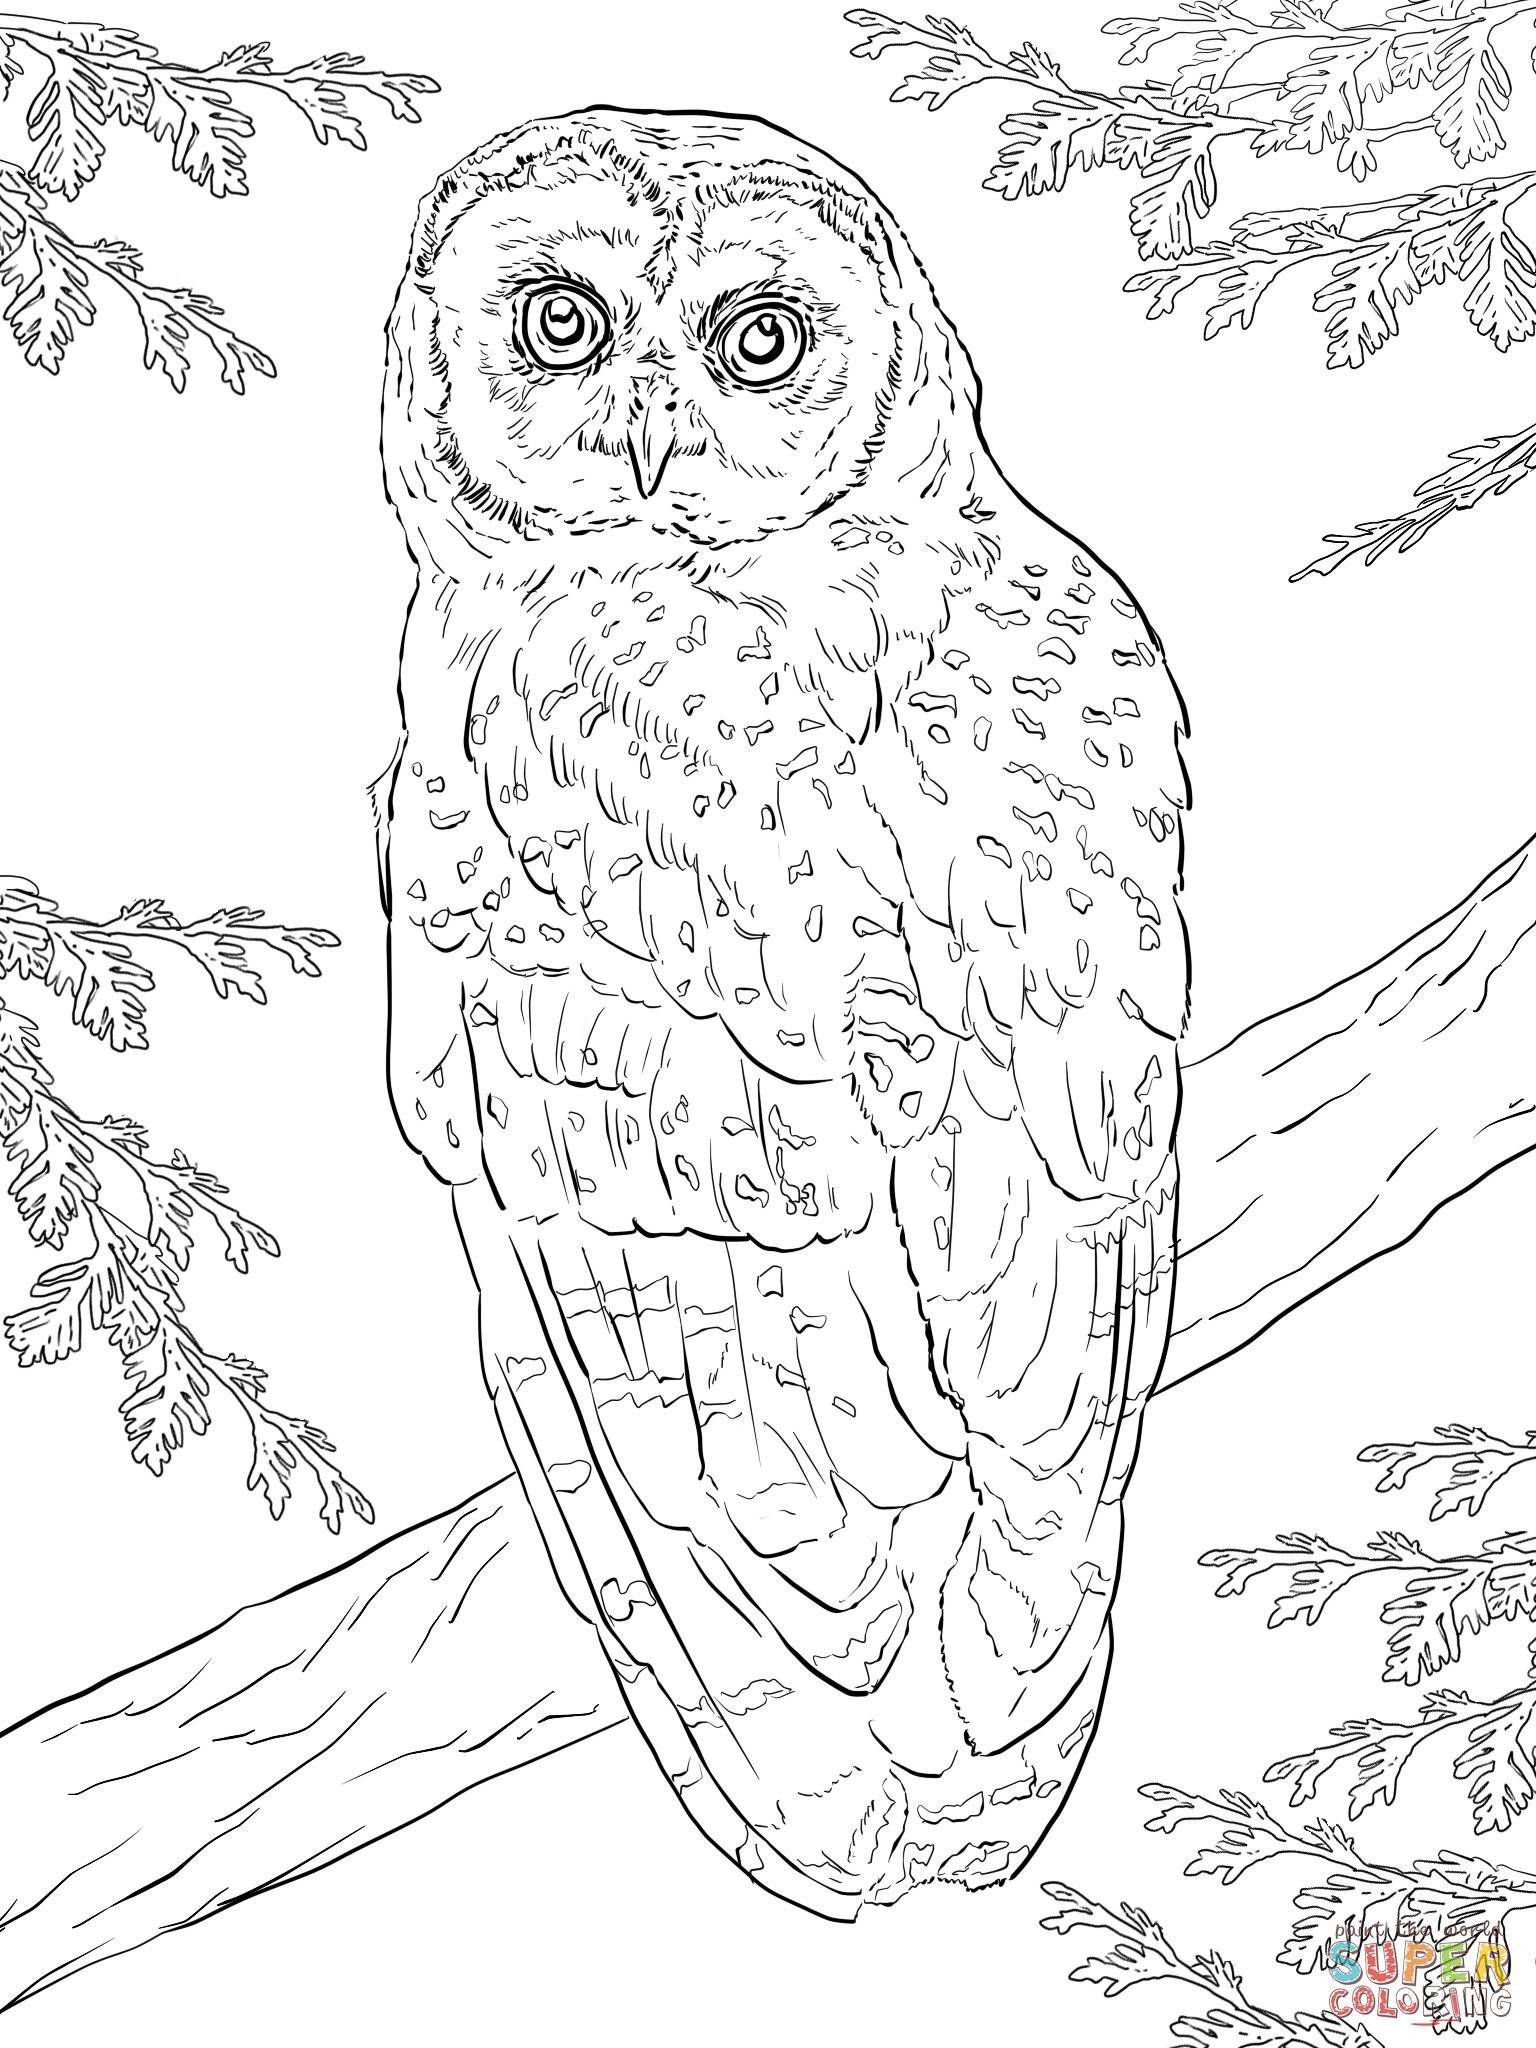 Northern Spotted Owl Coloring Page   Free Printable Coloring